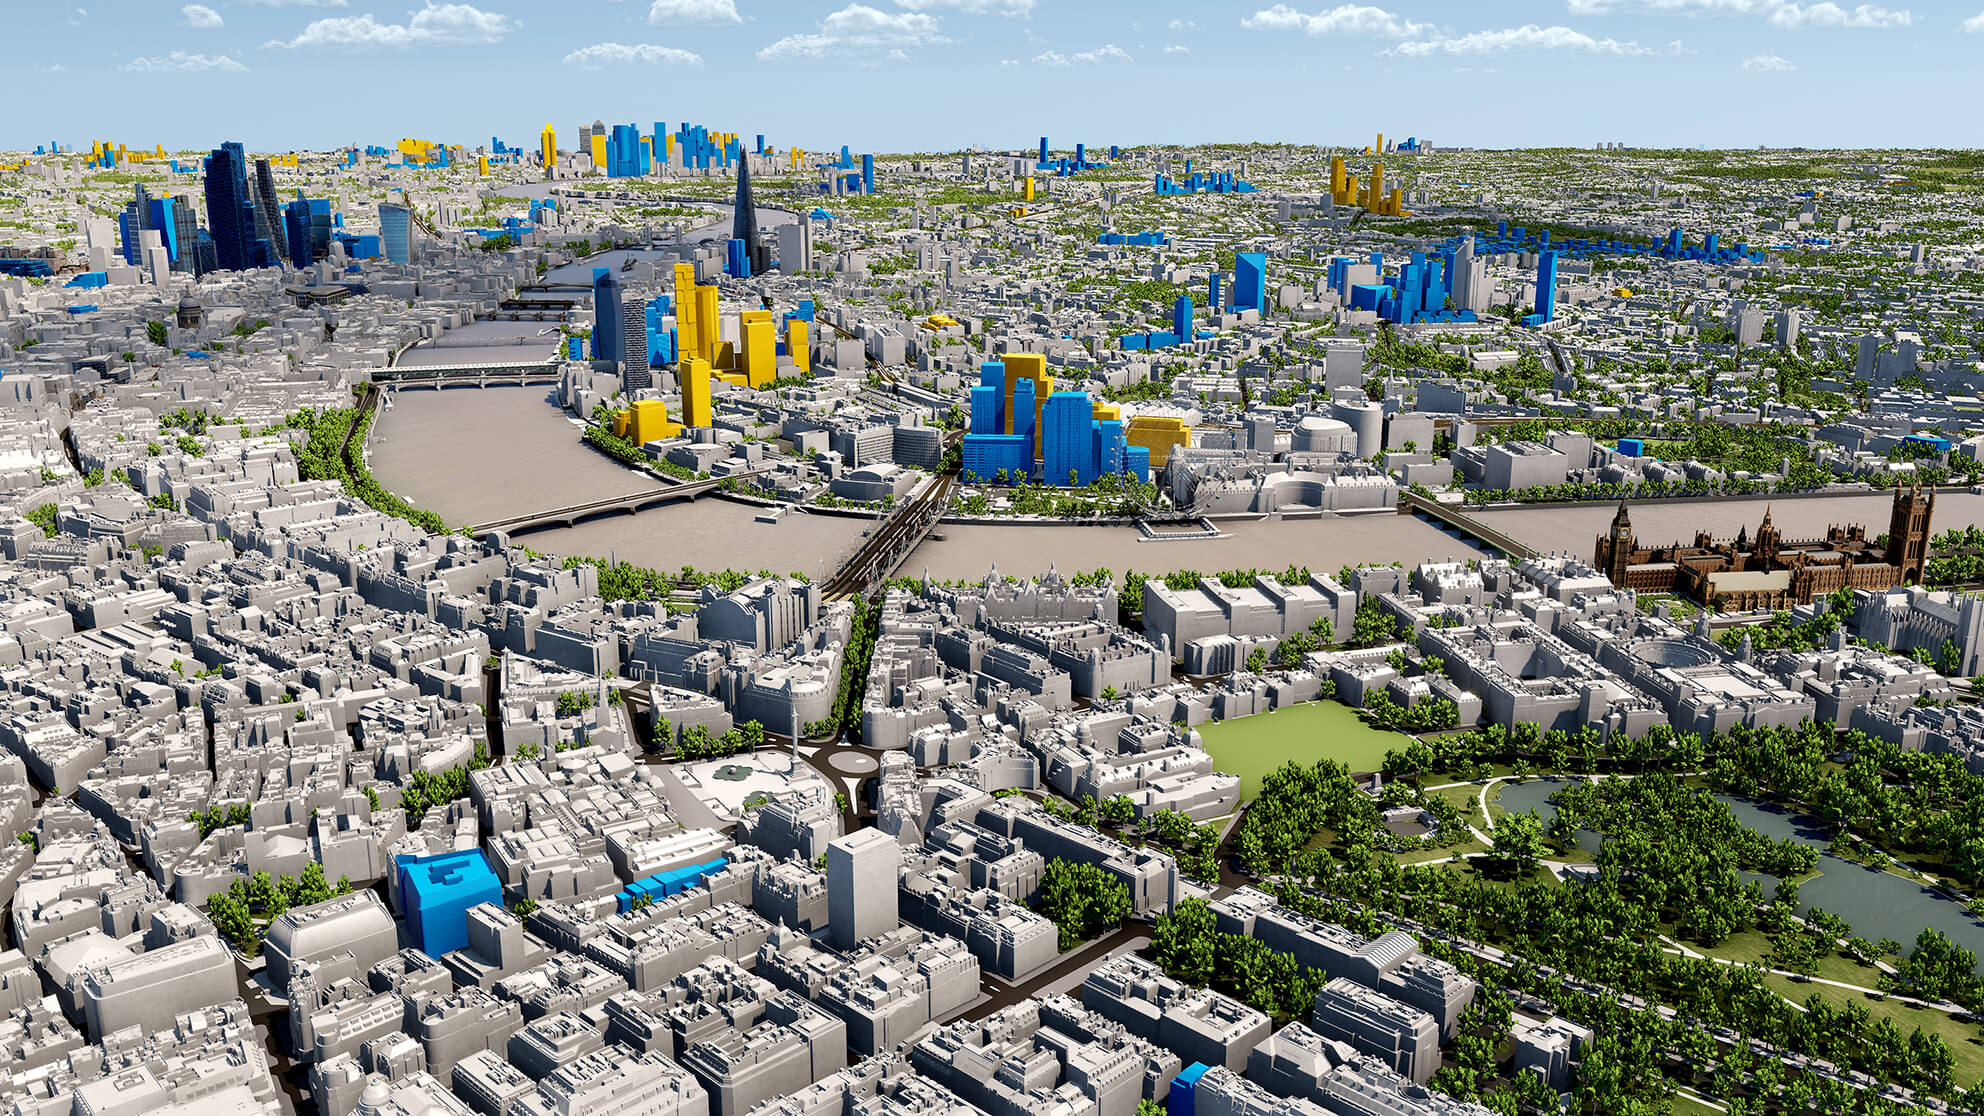 panoramic view of CGI 3d modelling map of London Thames, Shard, business district and houses of parliament.